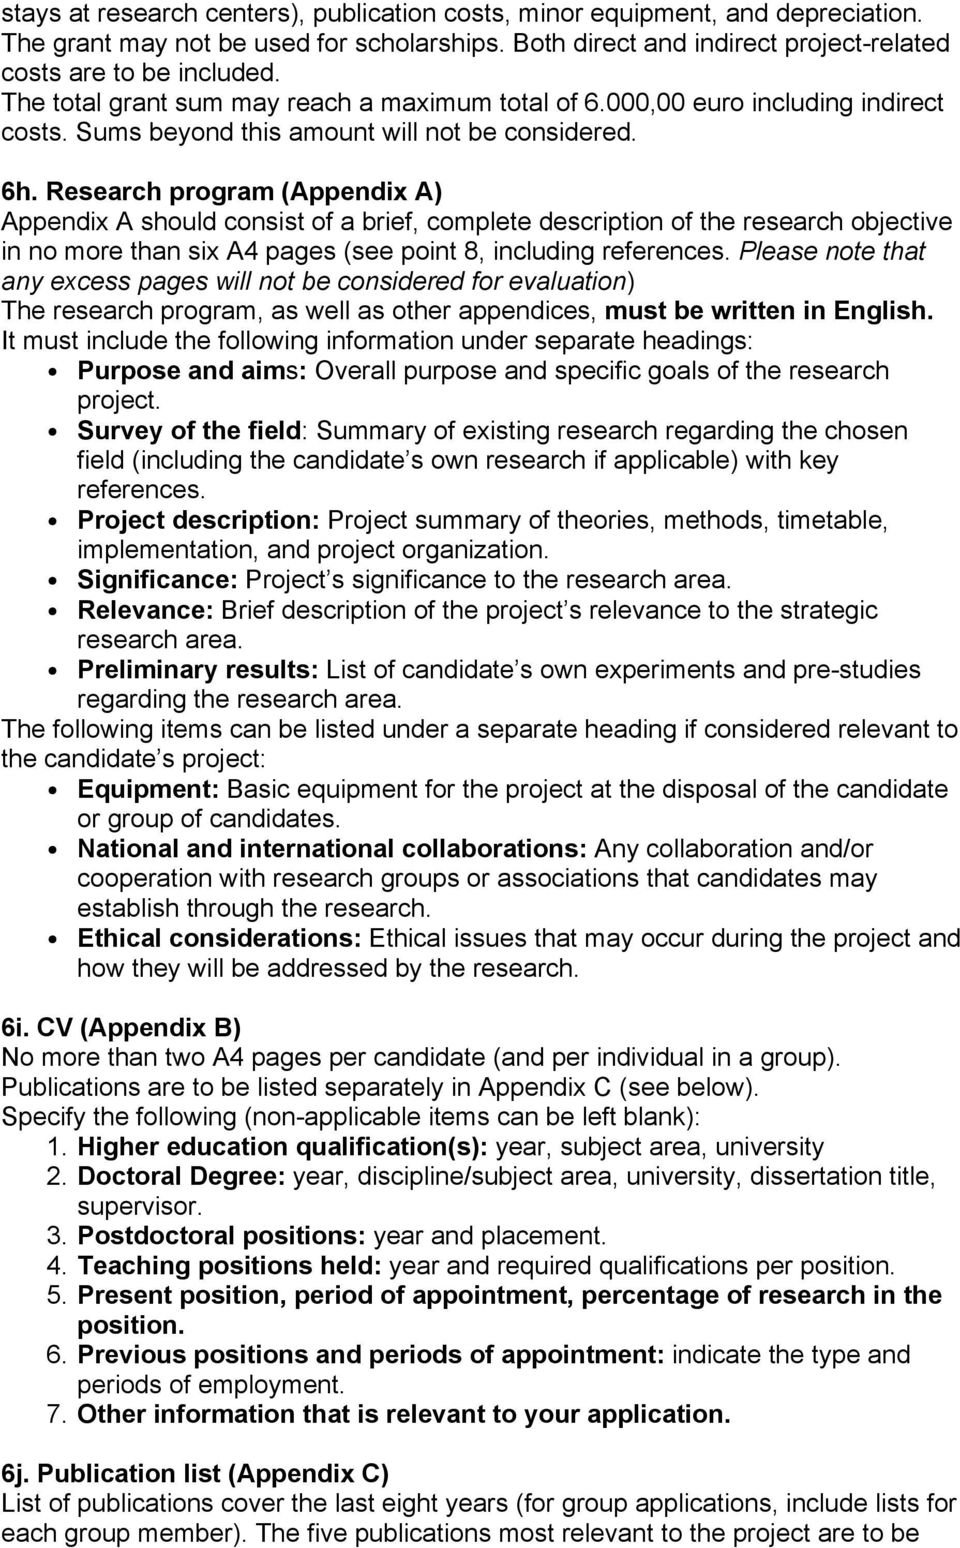 Research program (Appendix A) Appendix A should consist of a brief, complete description of the research objective in no more than six A4 pages (see point 8, including references.